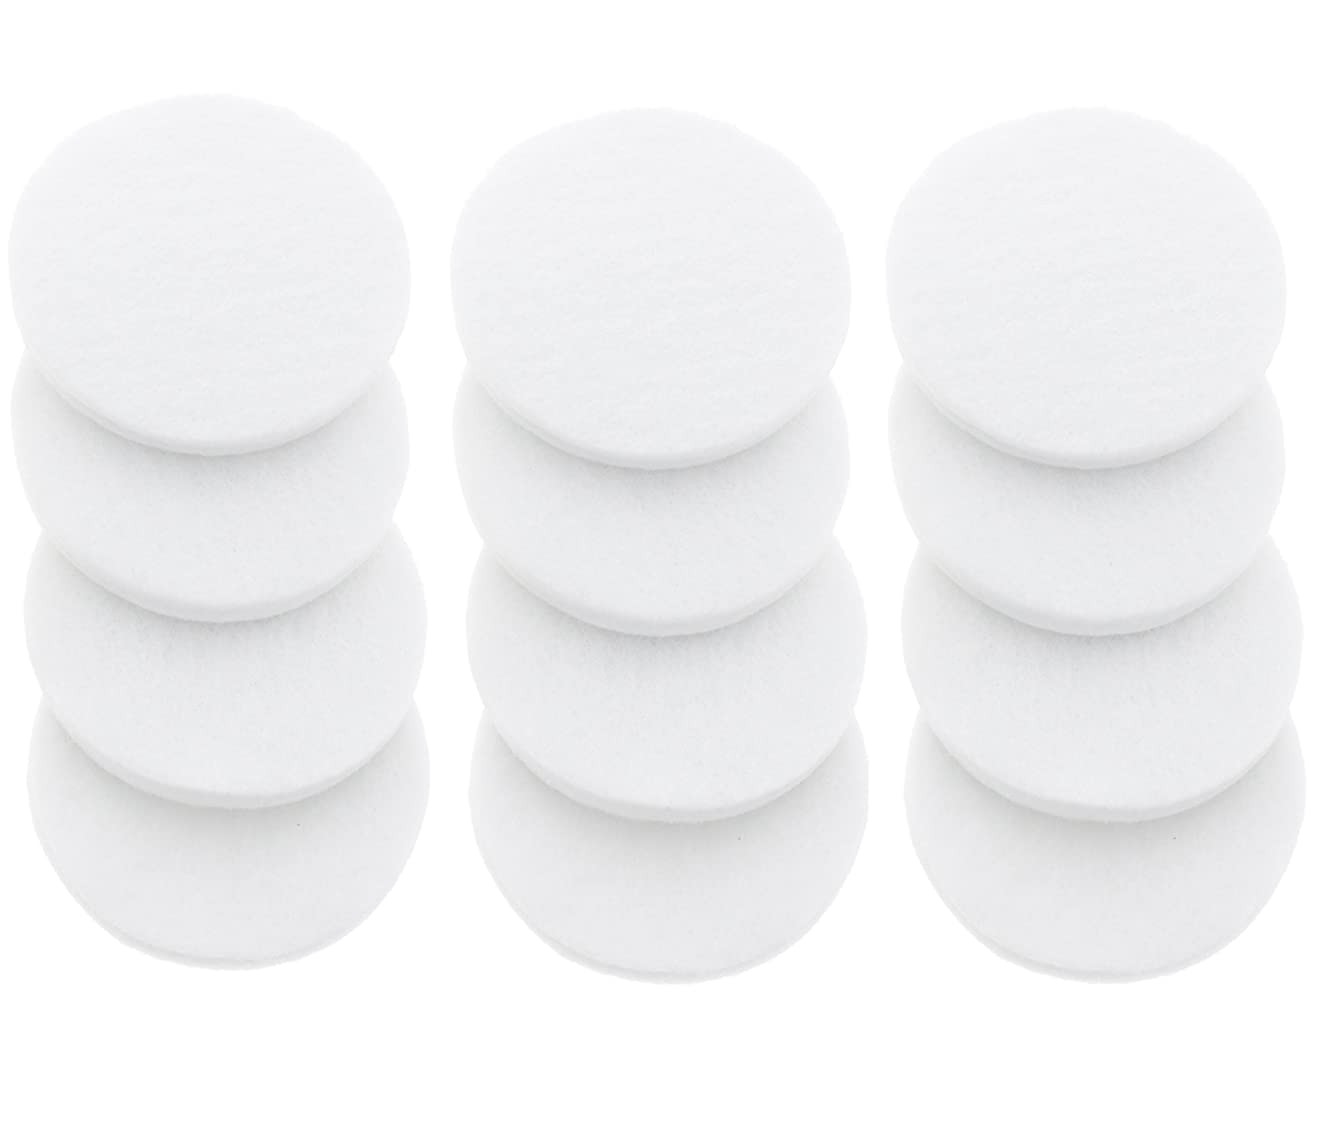 12 PACK Replacement Coffee Filters For The Toddy Cold Brew System / Toddy Maker By Essential Values